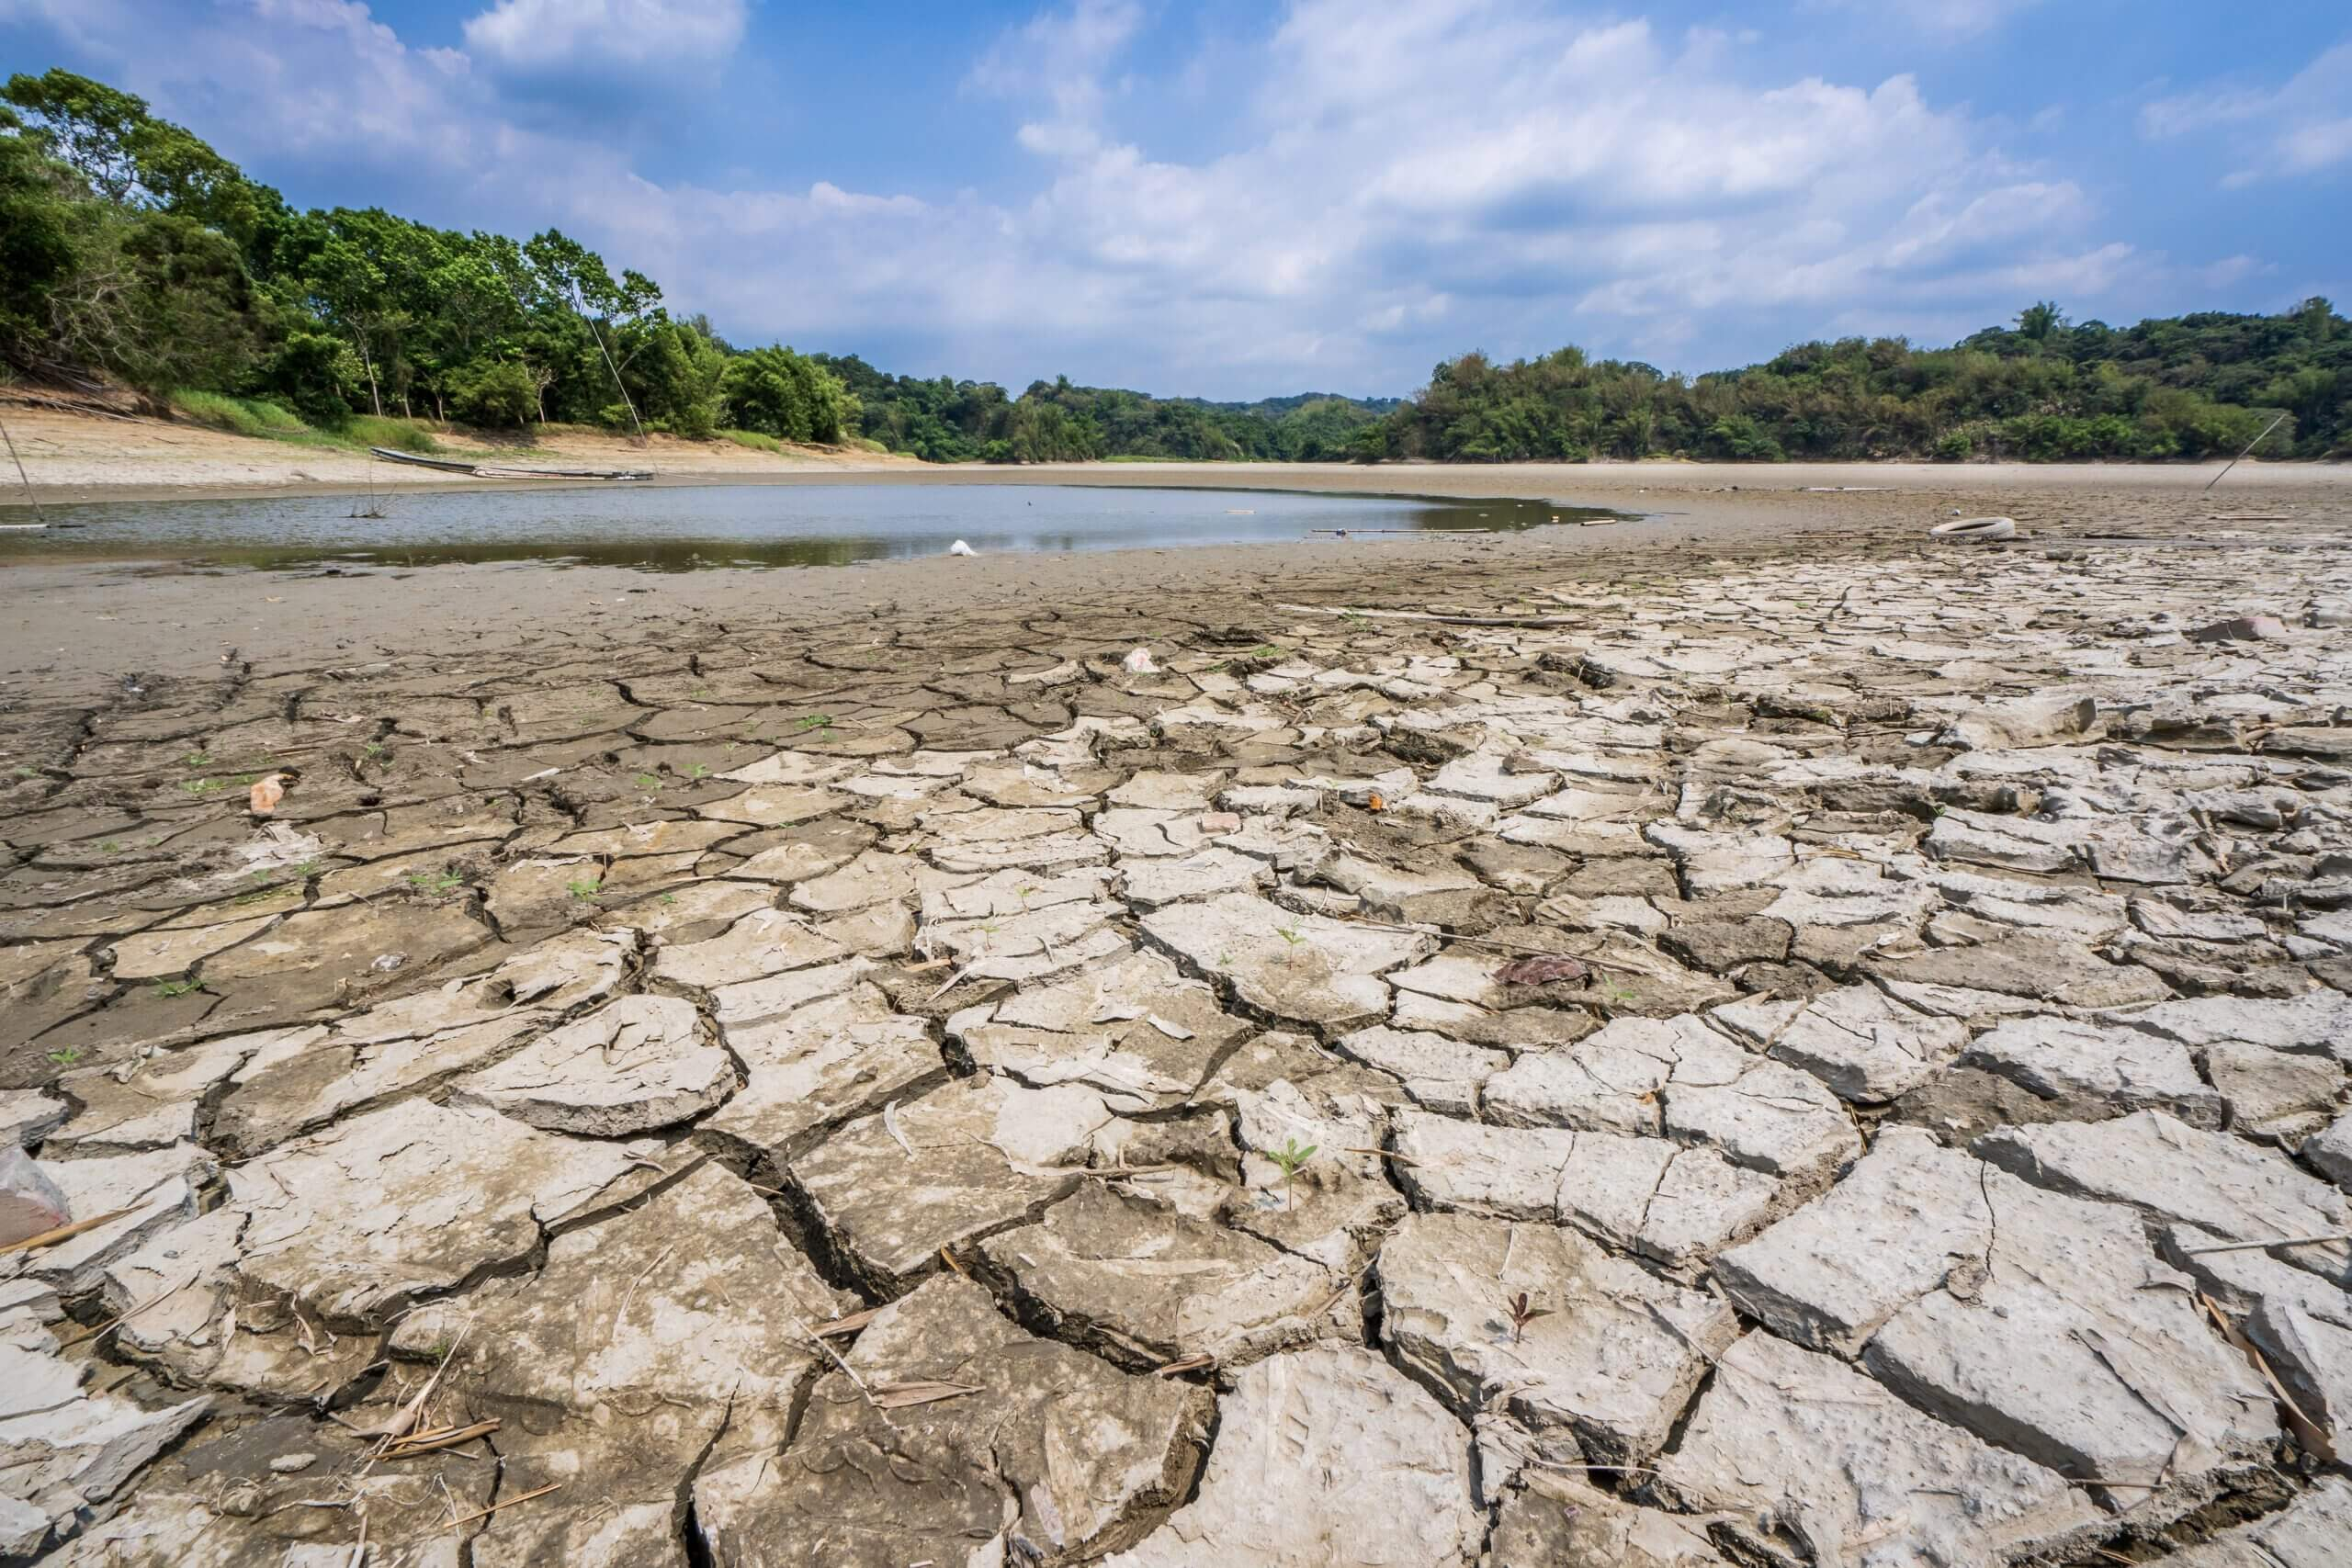 Taiwan was hit with one of its worst droughts in 56 years.